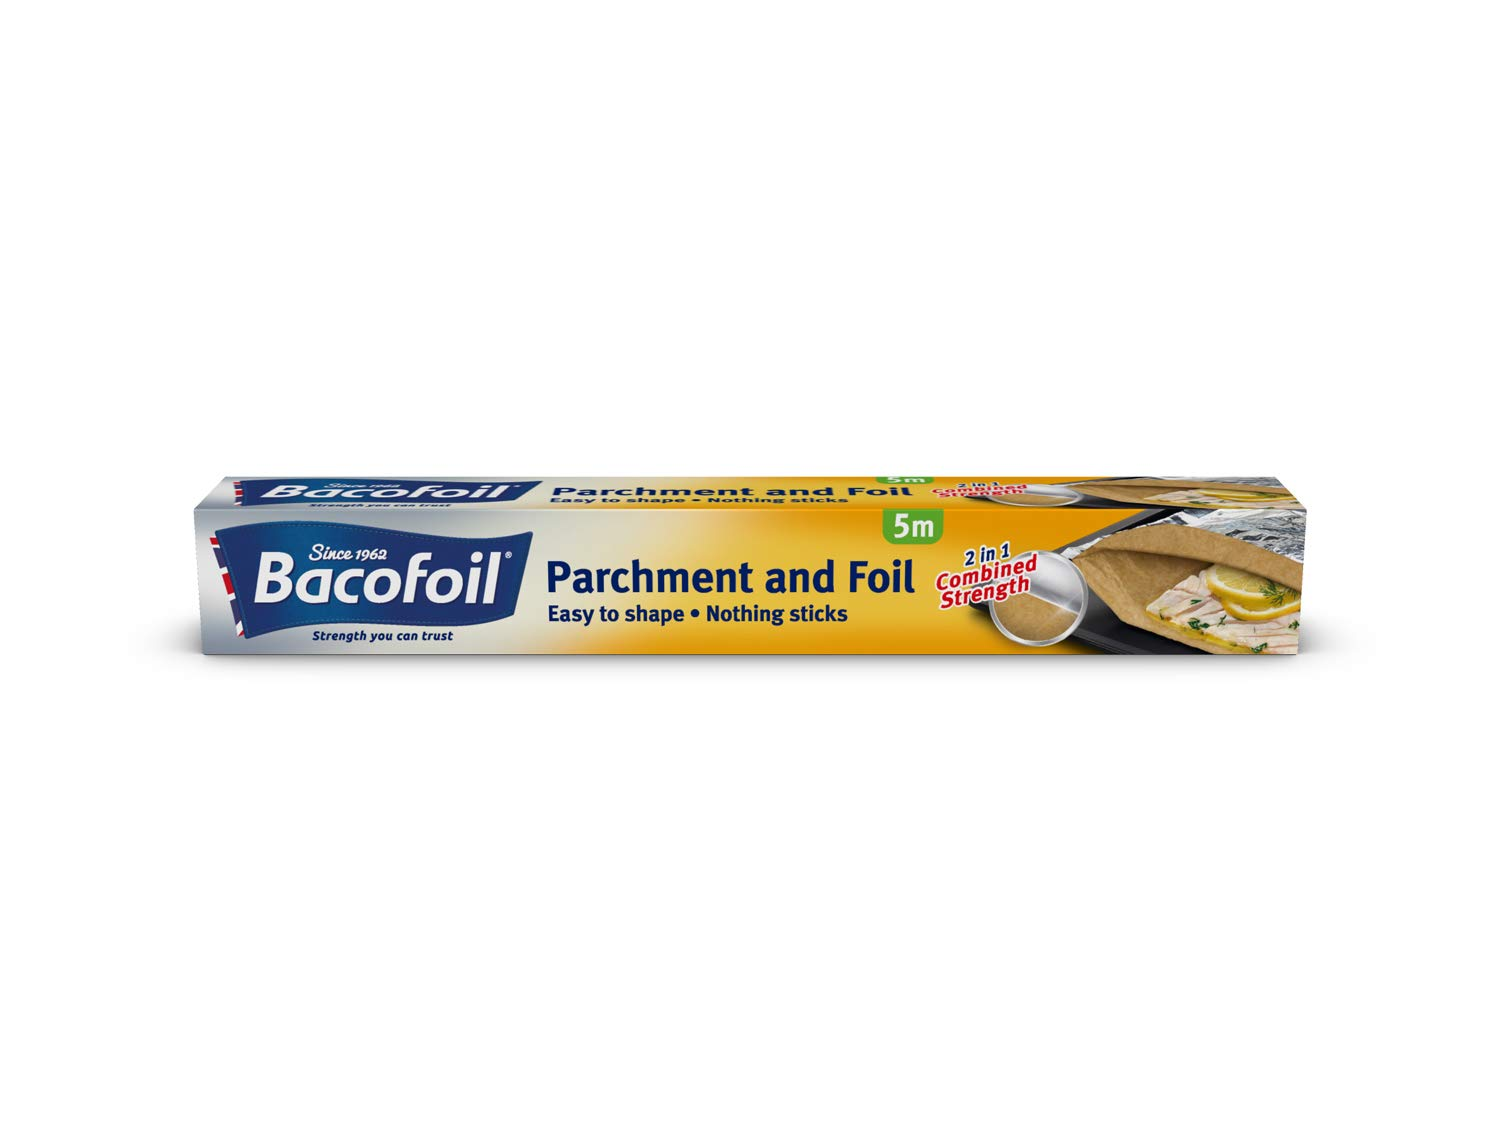 Bacofoil 2-in-1 Foil and Parchment Paper, 5m